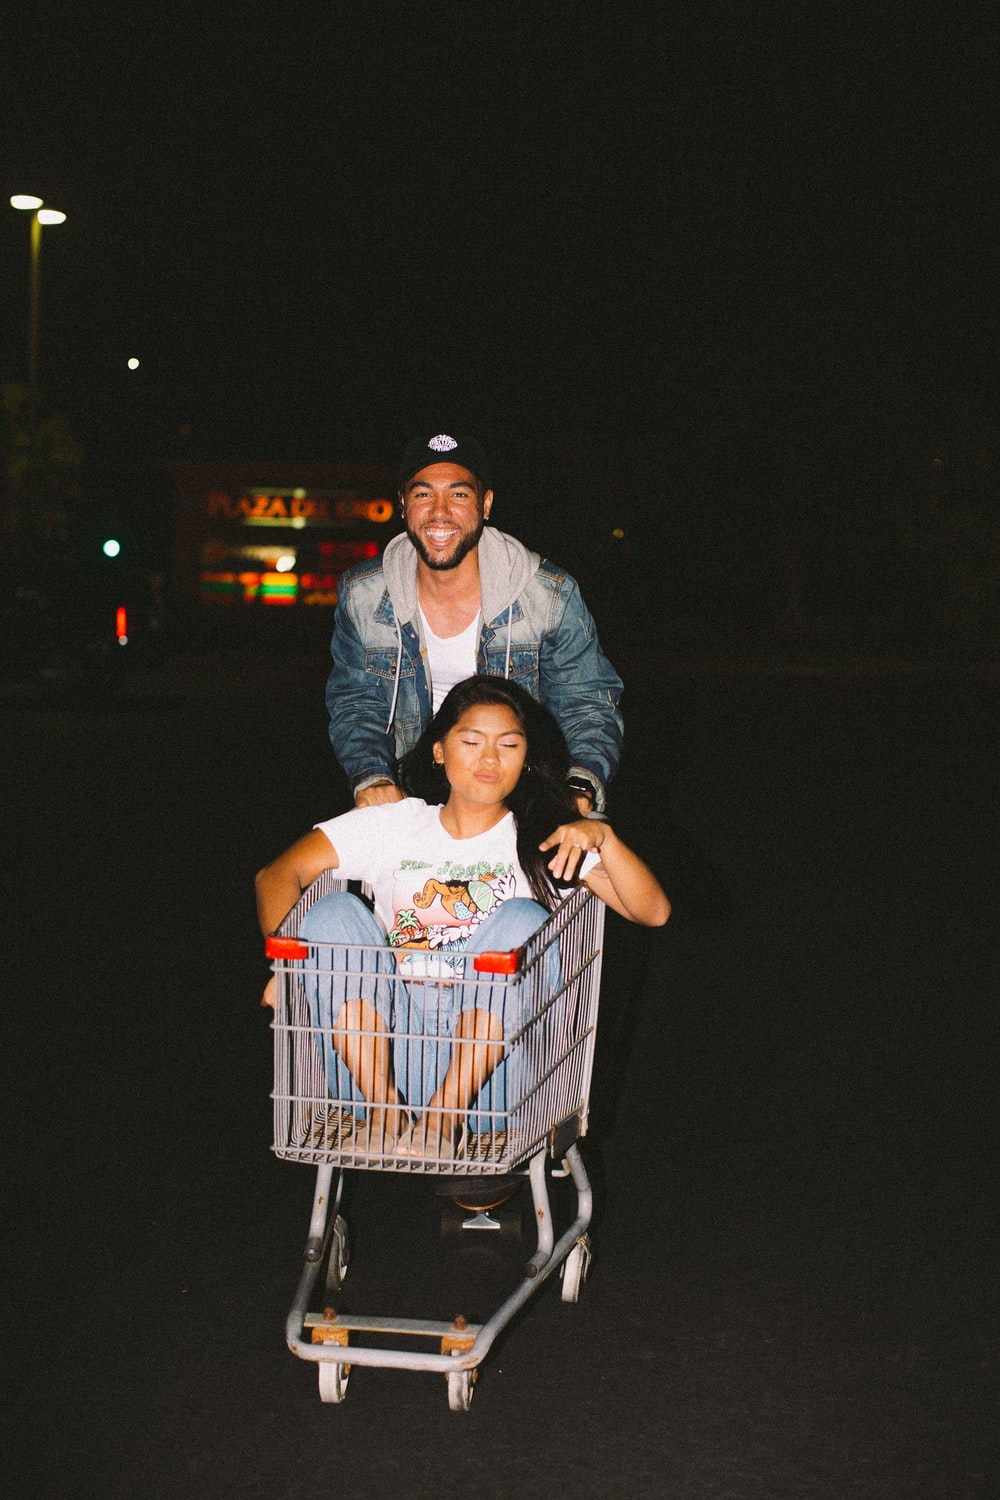 woman in shopping cart pulled by a man